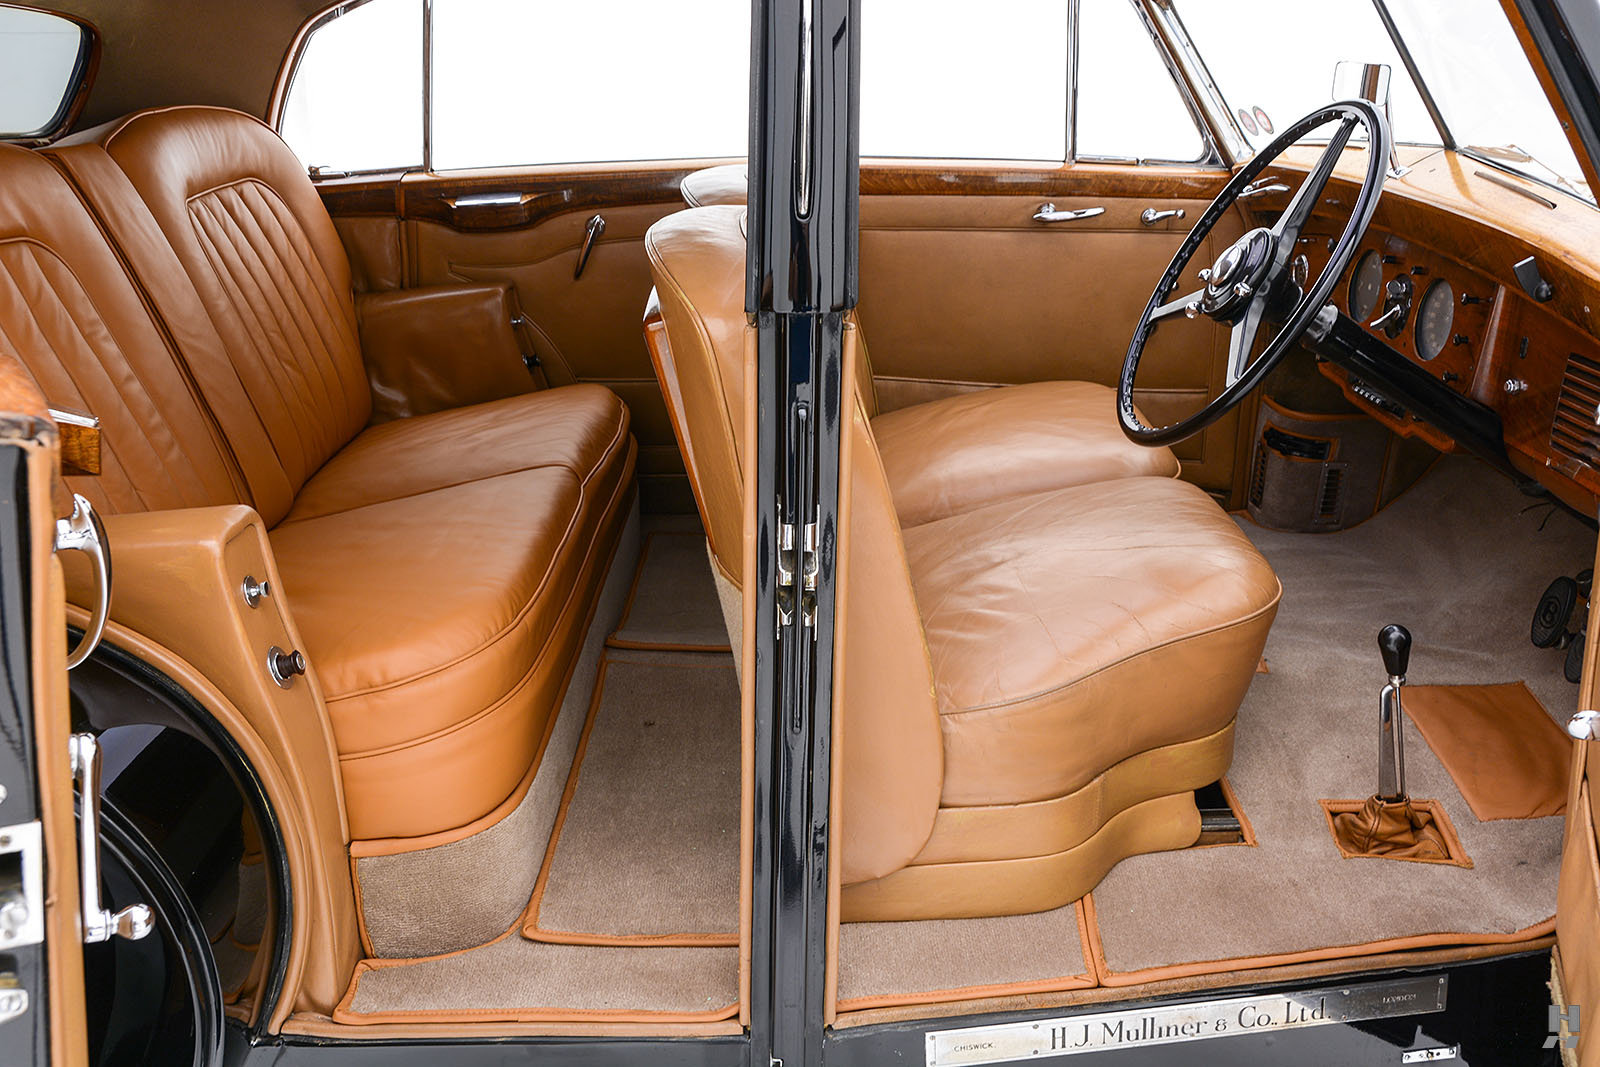 1951 BENTLEY MARK VI MULLINER LIGHTWEIGHT SPORTS SALOON For Sale (picture 3 of 6)